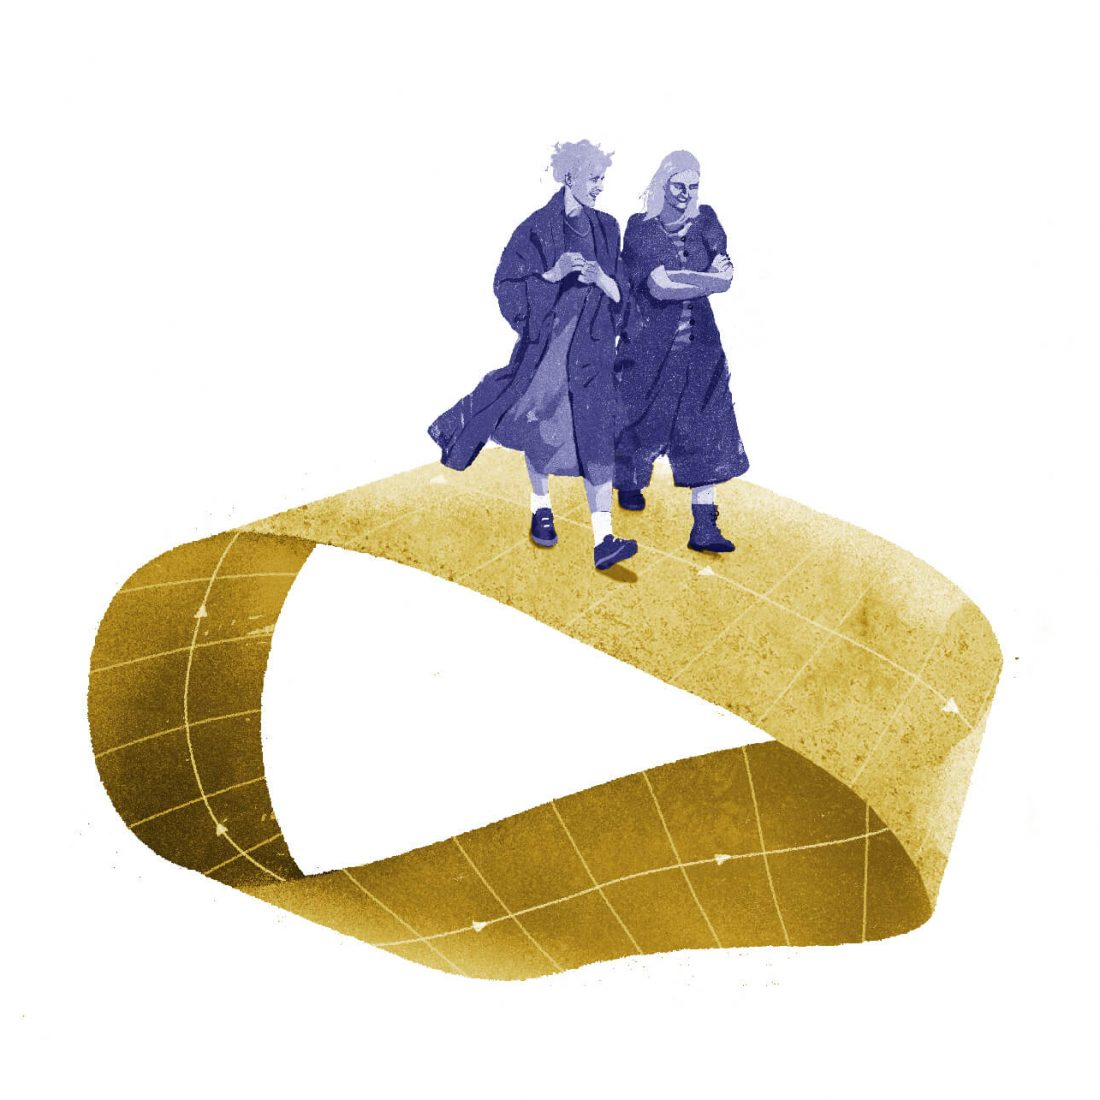 Two friends chat smiling while walking on a Moebius strip